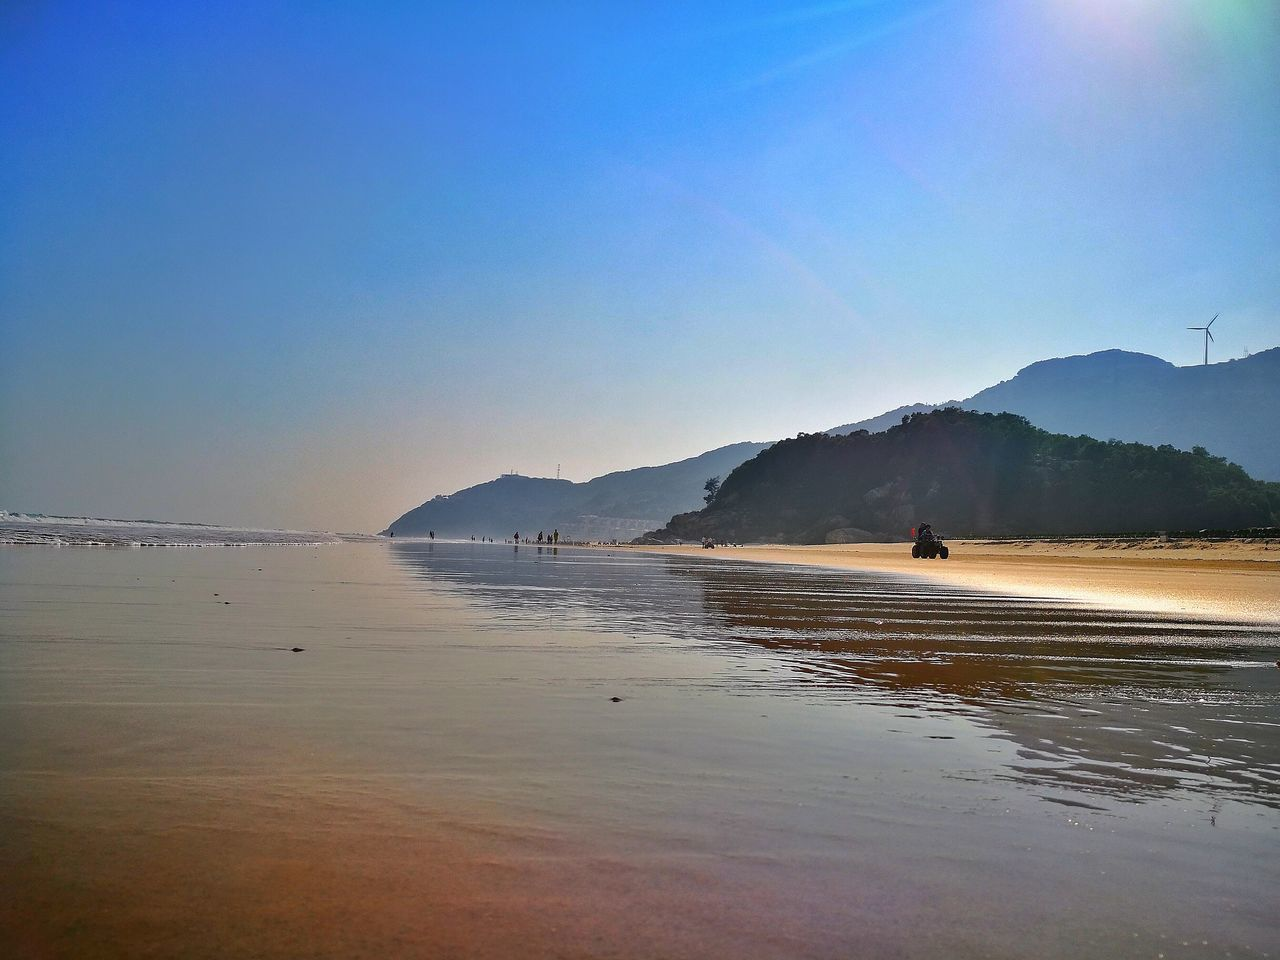 beach, sea, water, nature, beauty in nature, sand, scenics, clear sky, outdoors, vacations, tranquil scene, tranquility, mountain, blue, real people, sky, day, one person, men, people